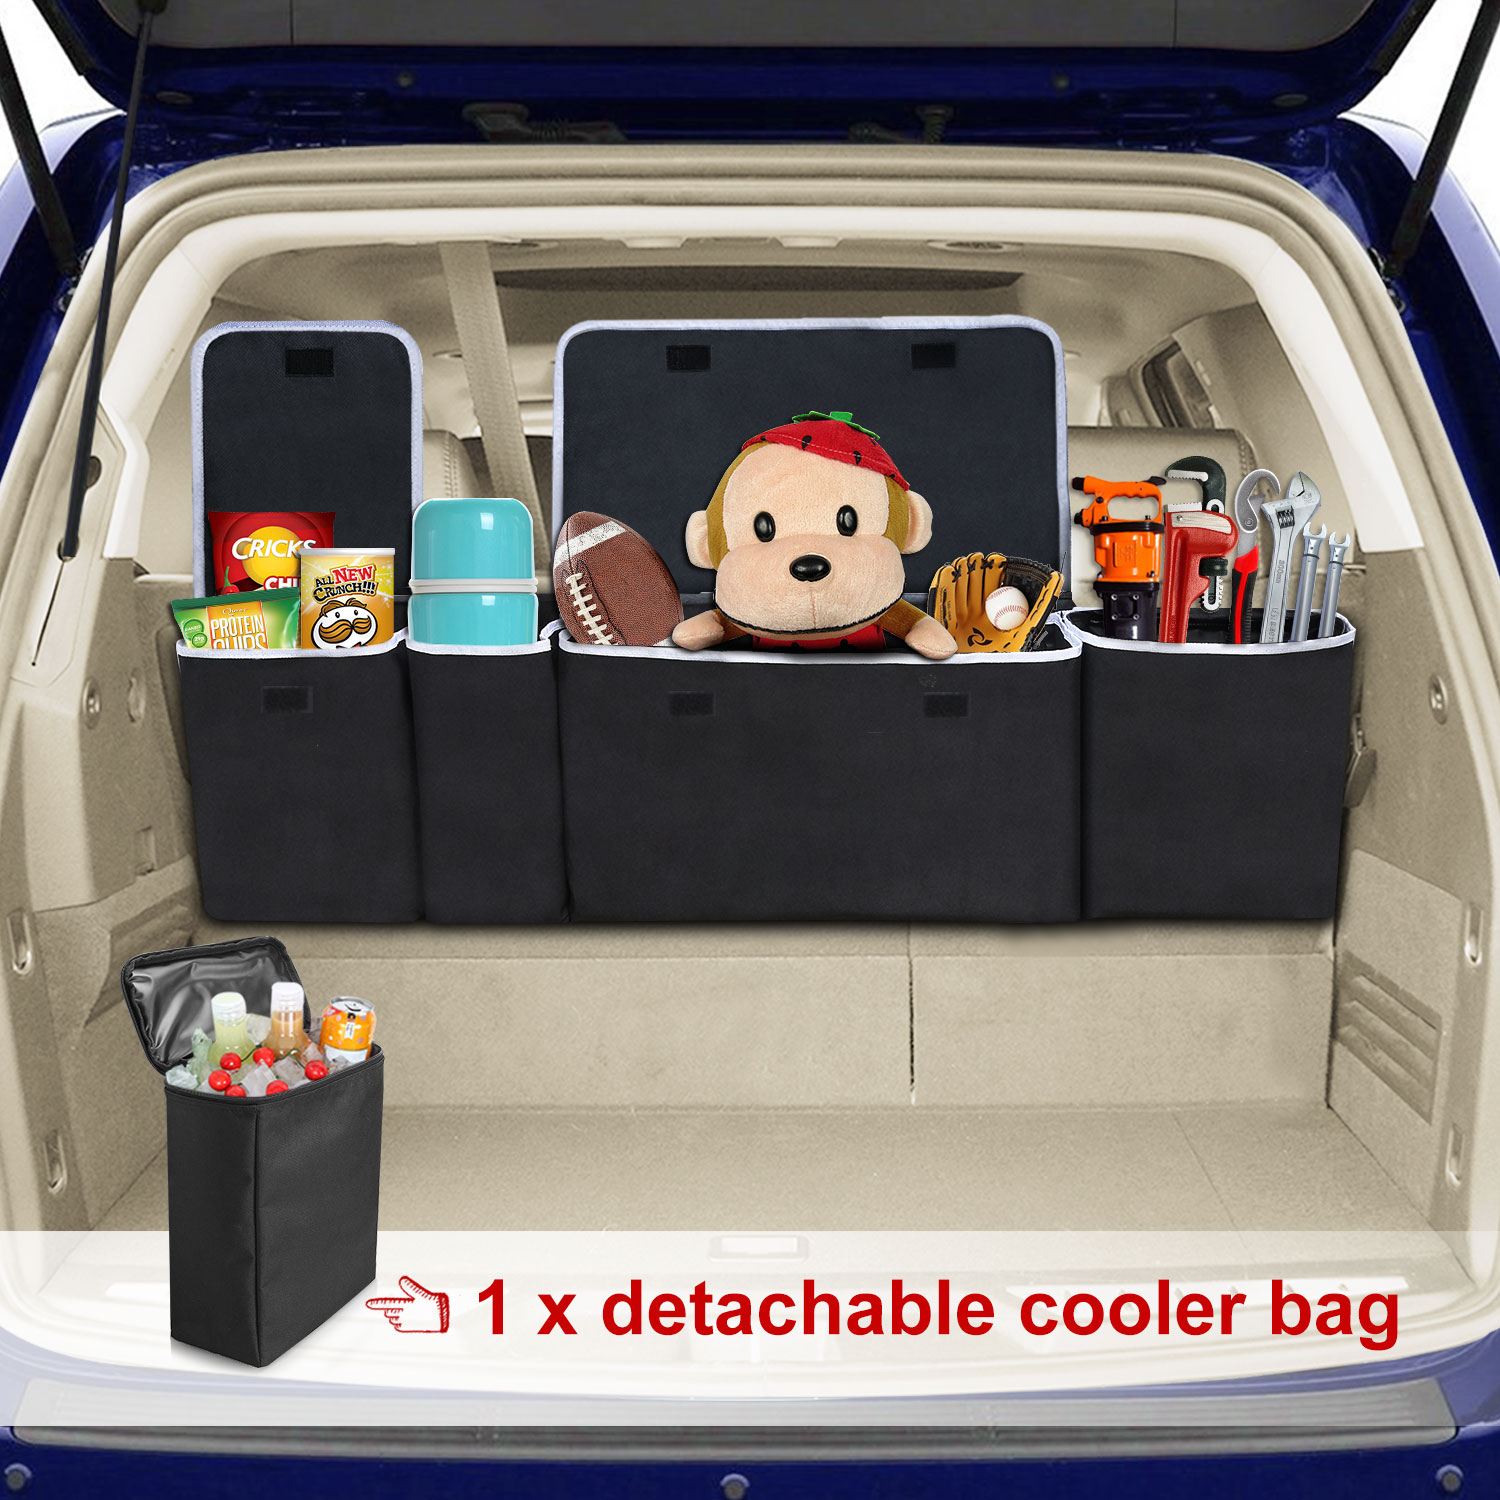 Modokit 600D Durable SUV Car Hanging Trunk Organizer with Detachable Cooler